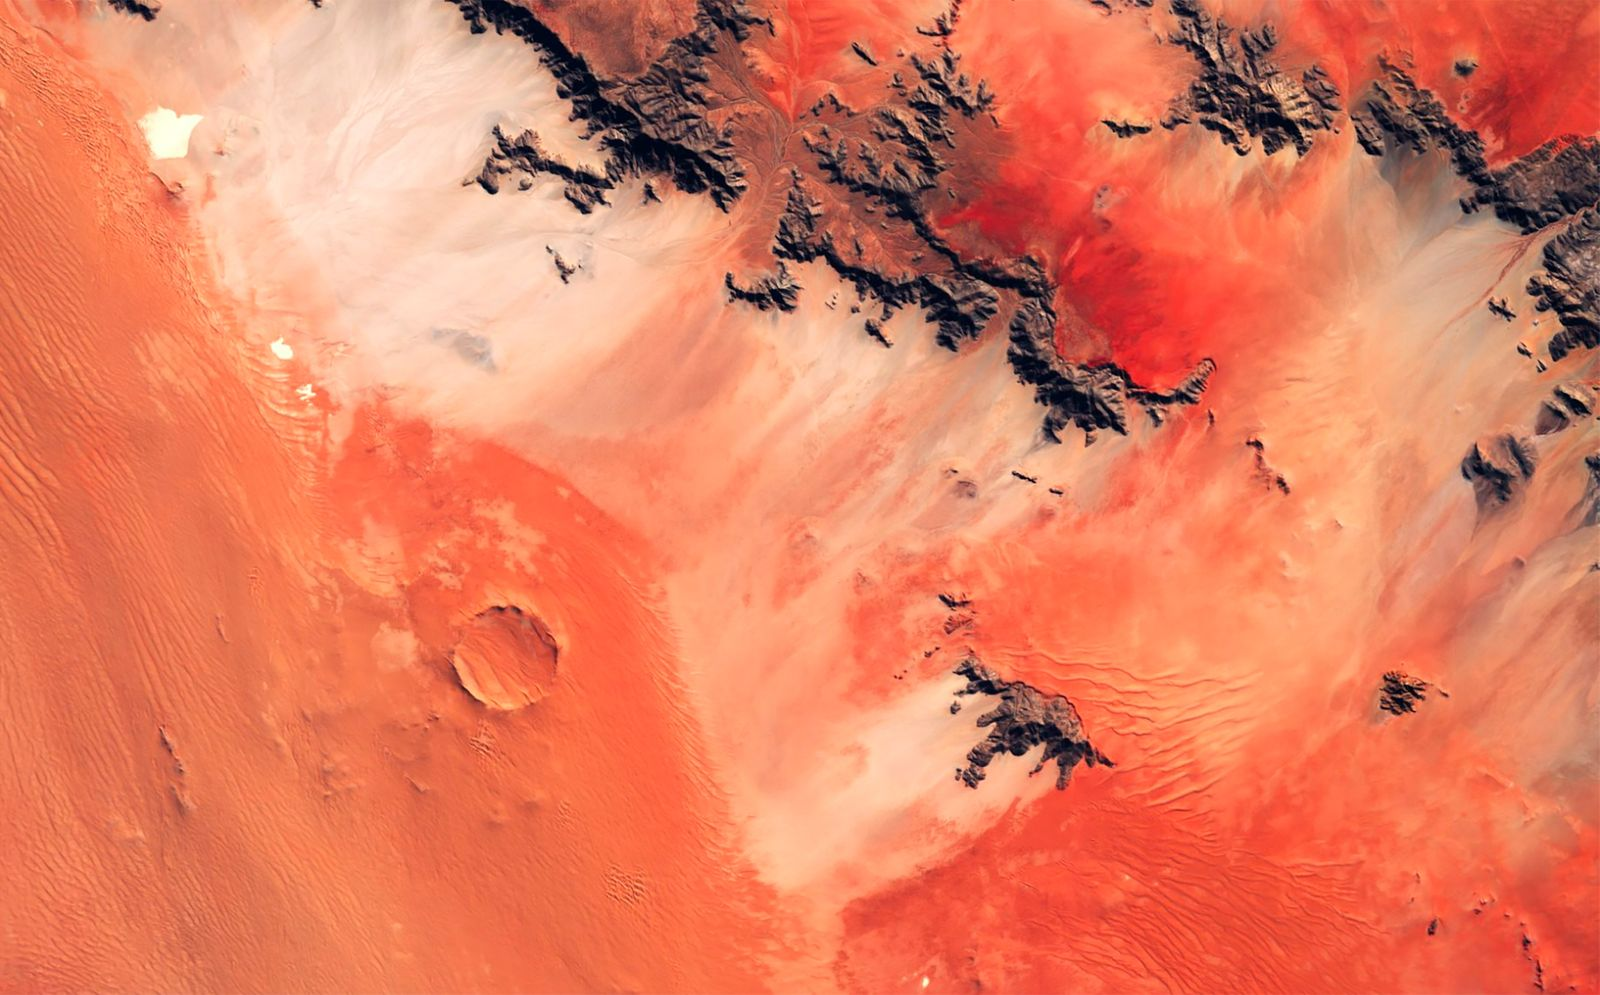 Roter Kamm impact crater